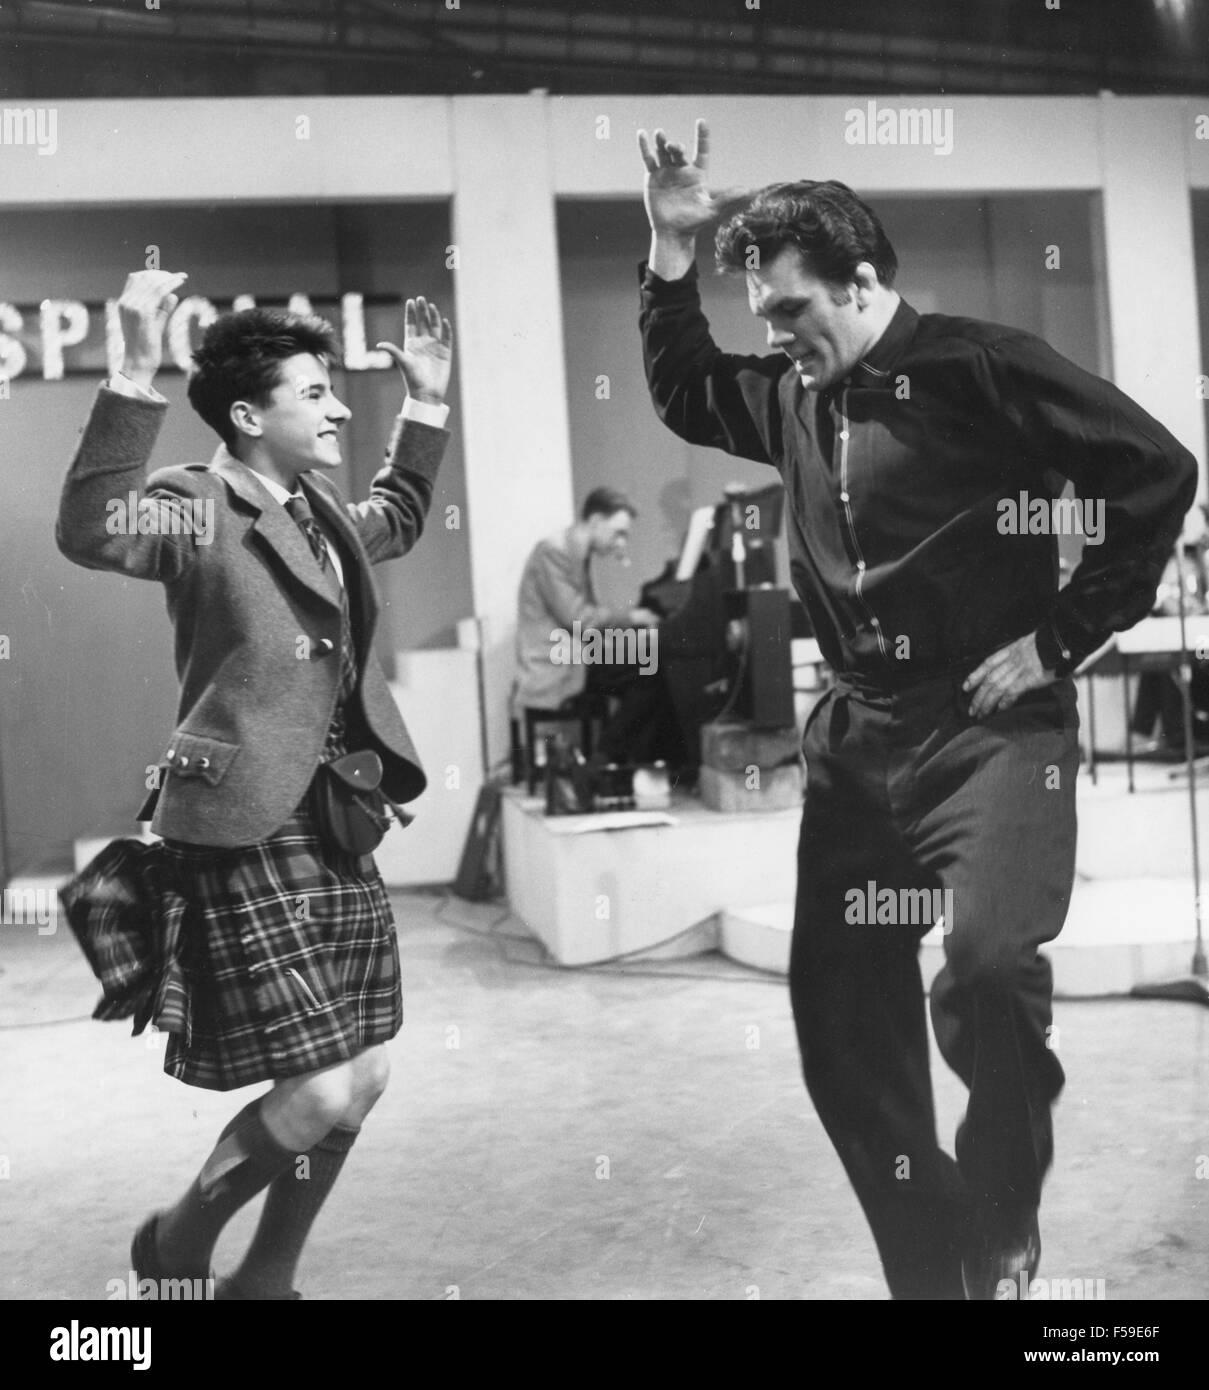 SIX-FIVE SPECIAL  - BBC pop music programme in 1957. Compare Freddie Mills dances with Scottish singer Jackie Dennis - Stock Image